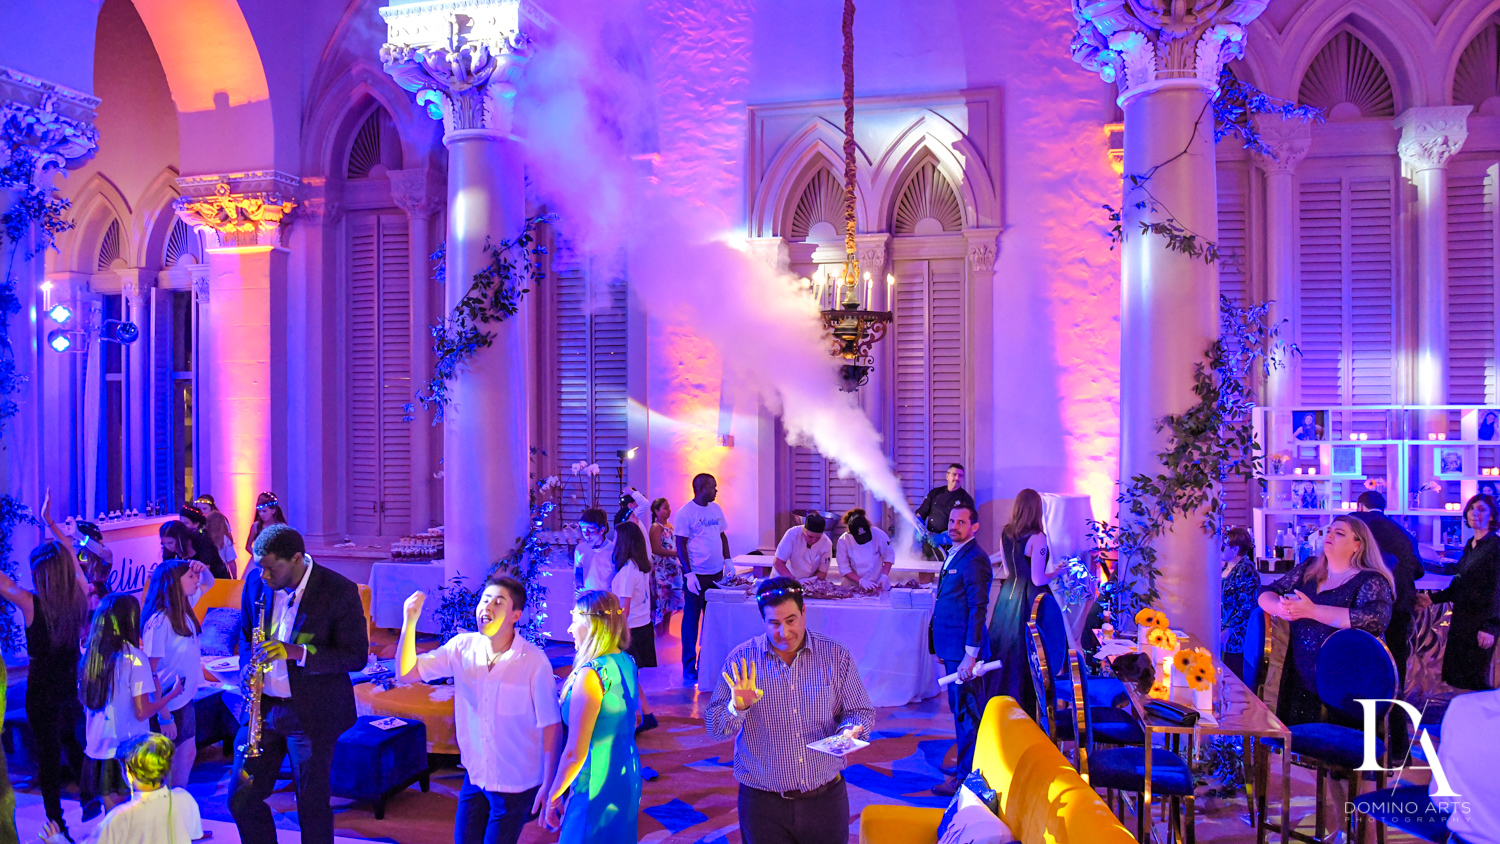 party smoke at Madeline in Paris theme Bat Mitzvah at Boca Raton Resort and Club by Domino Arts Photography